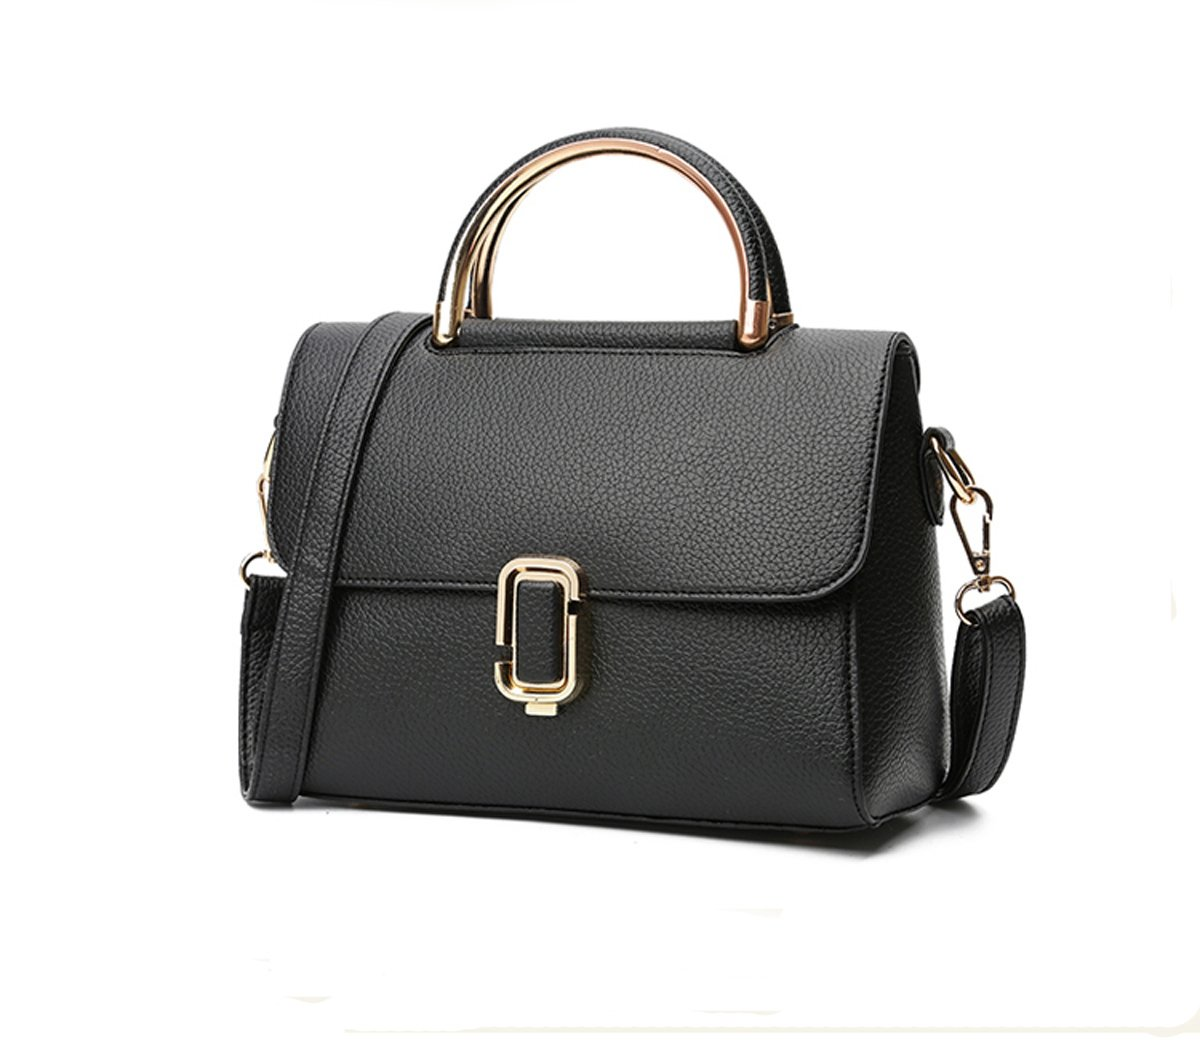 Handbags for Women Purses and Handbags Tote Bags PU Leather Shoulder Bag Casual Daypack